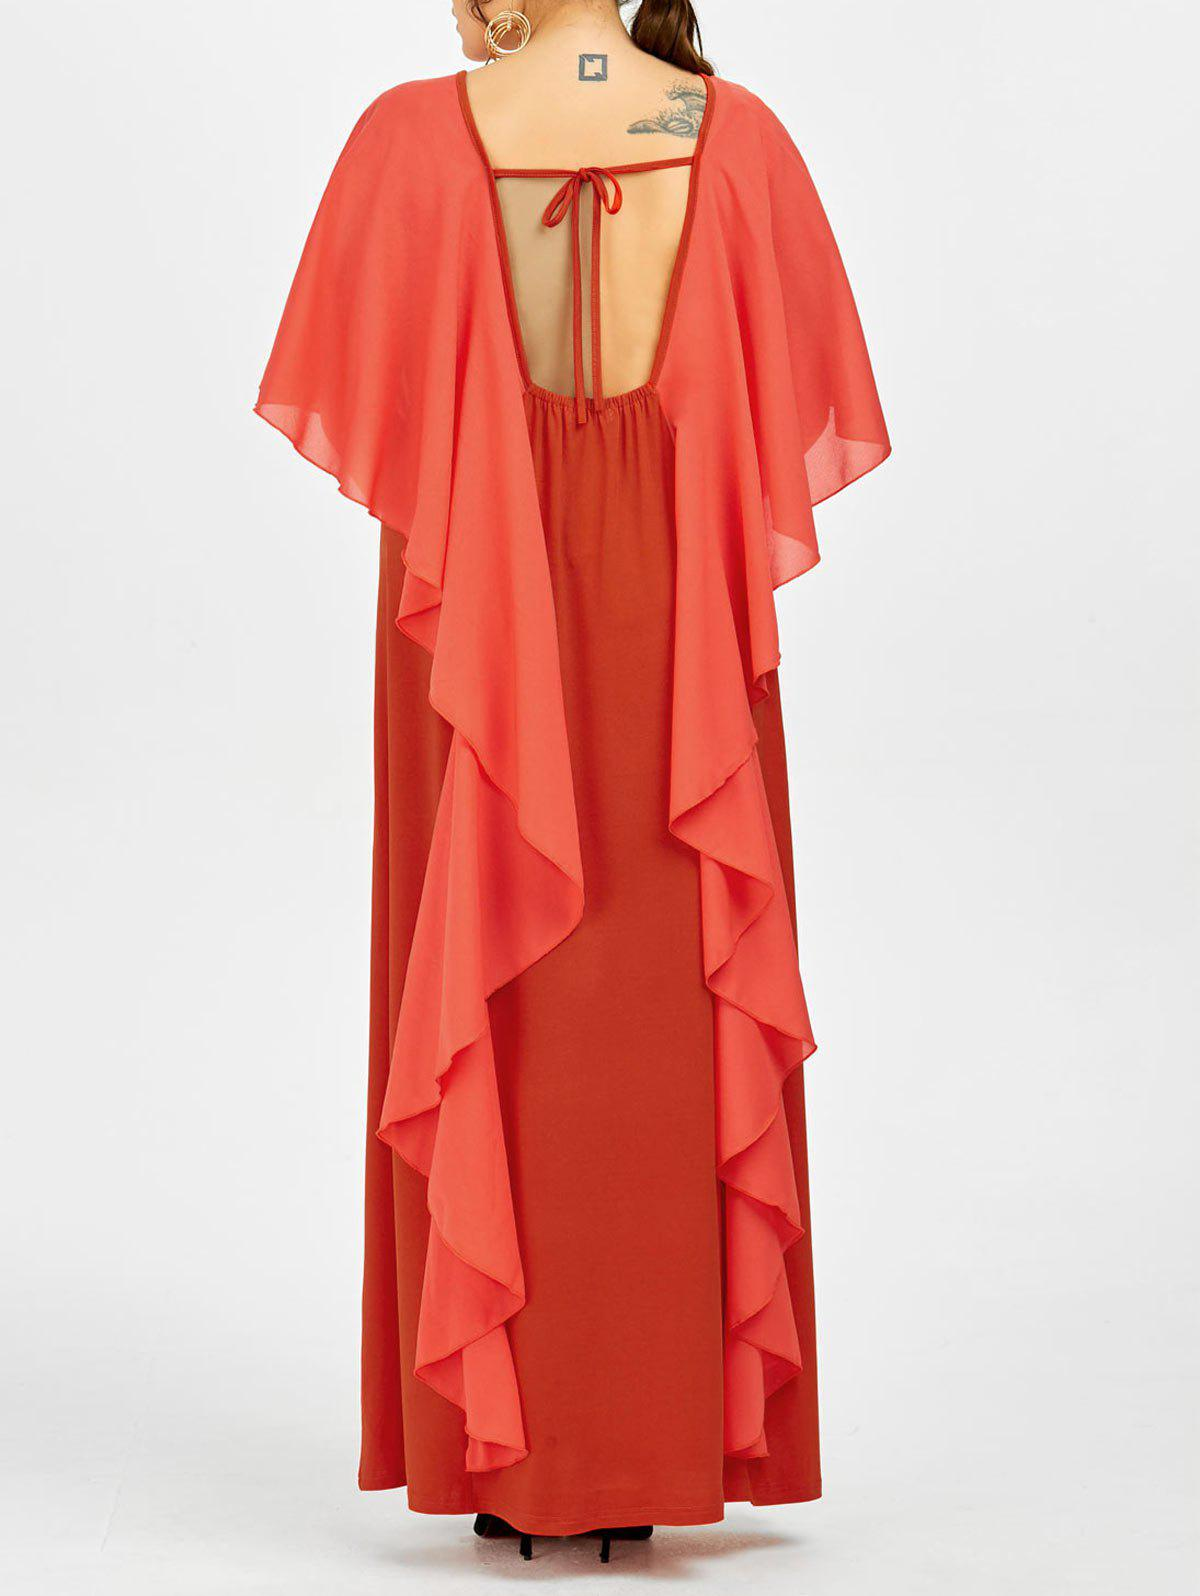 Flounce Backless Plus Size Cape Robe de soiree formelle - Rouge 4XL